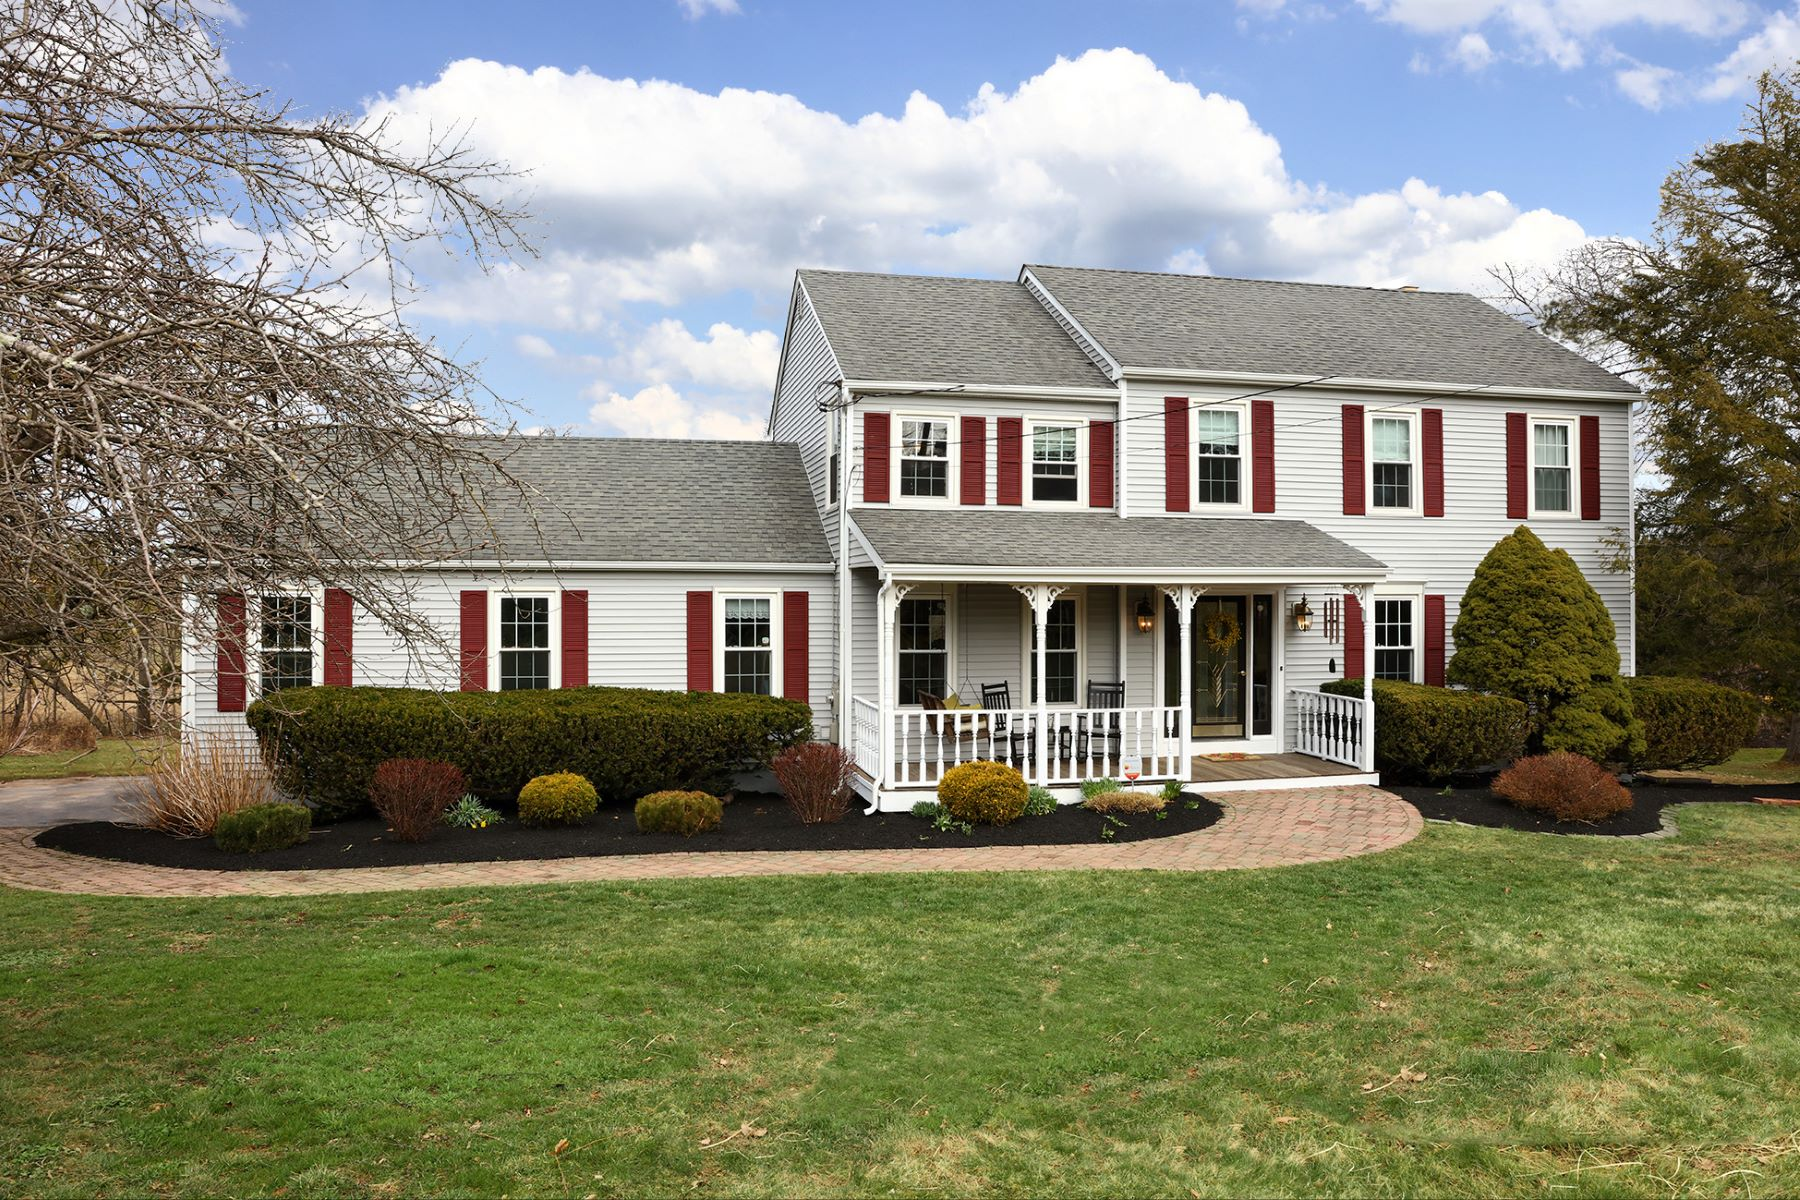 Single Family Home for Sale at Bucolic Views Fill Pretty Ringoes Colonial - East Amwell Township 23 Welisewitz Road Ringoes, New Jersey 08551 United States